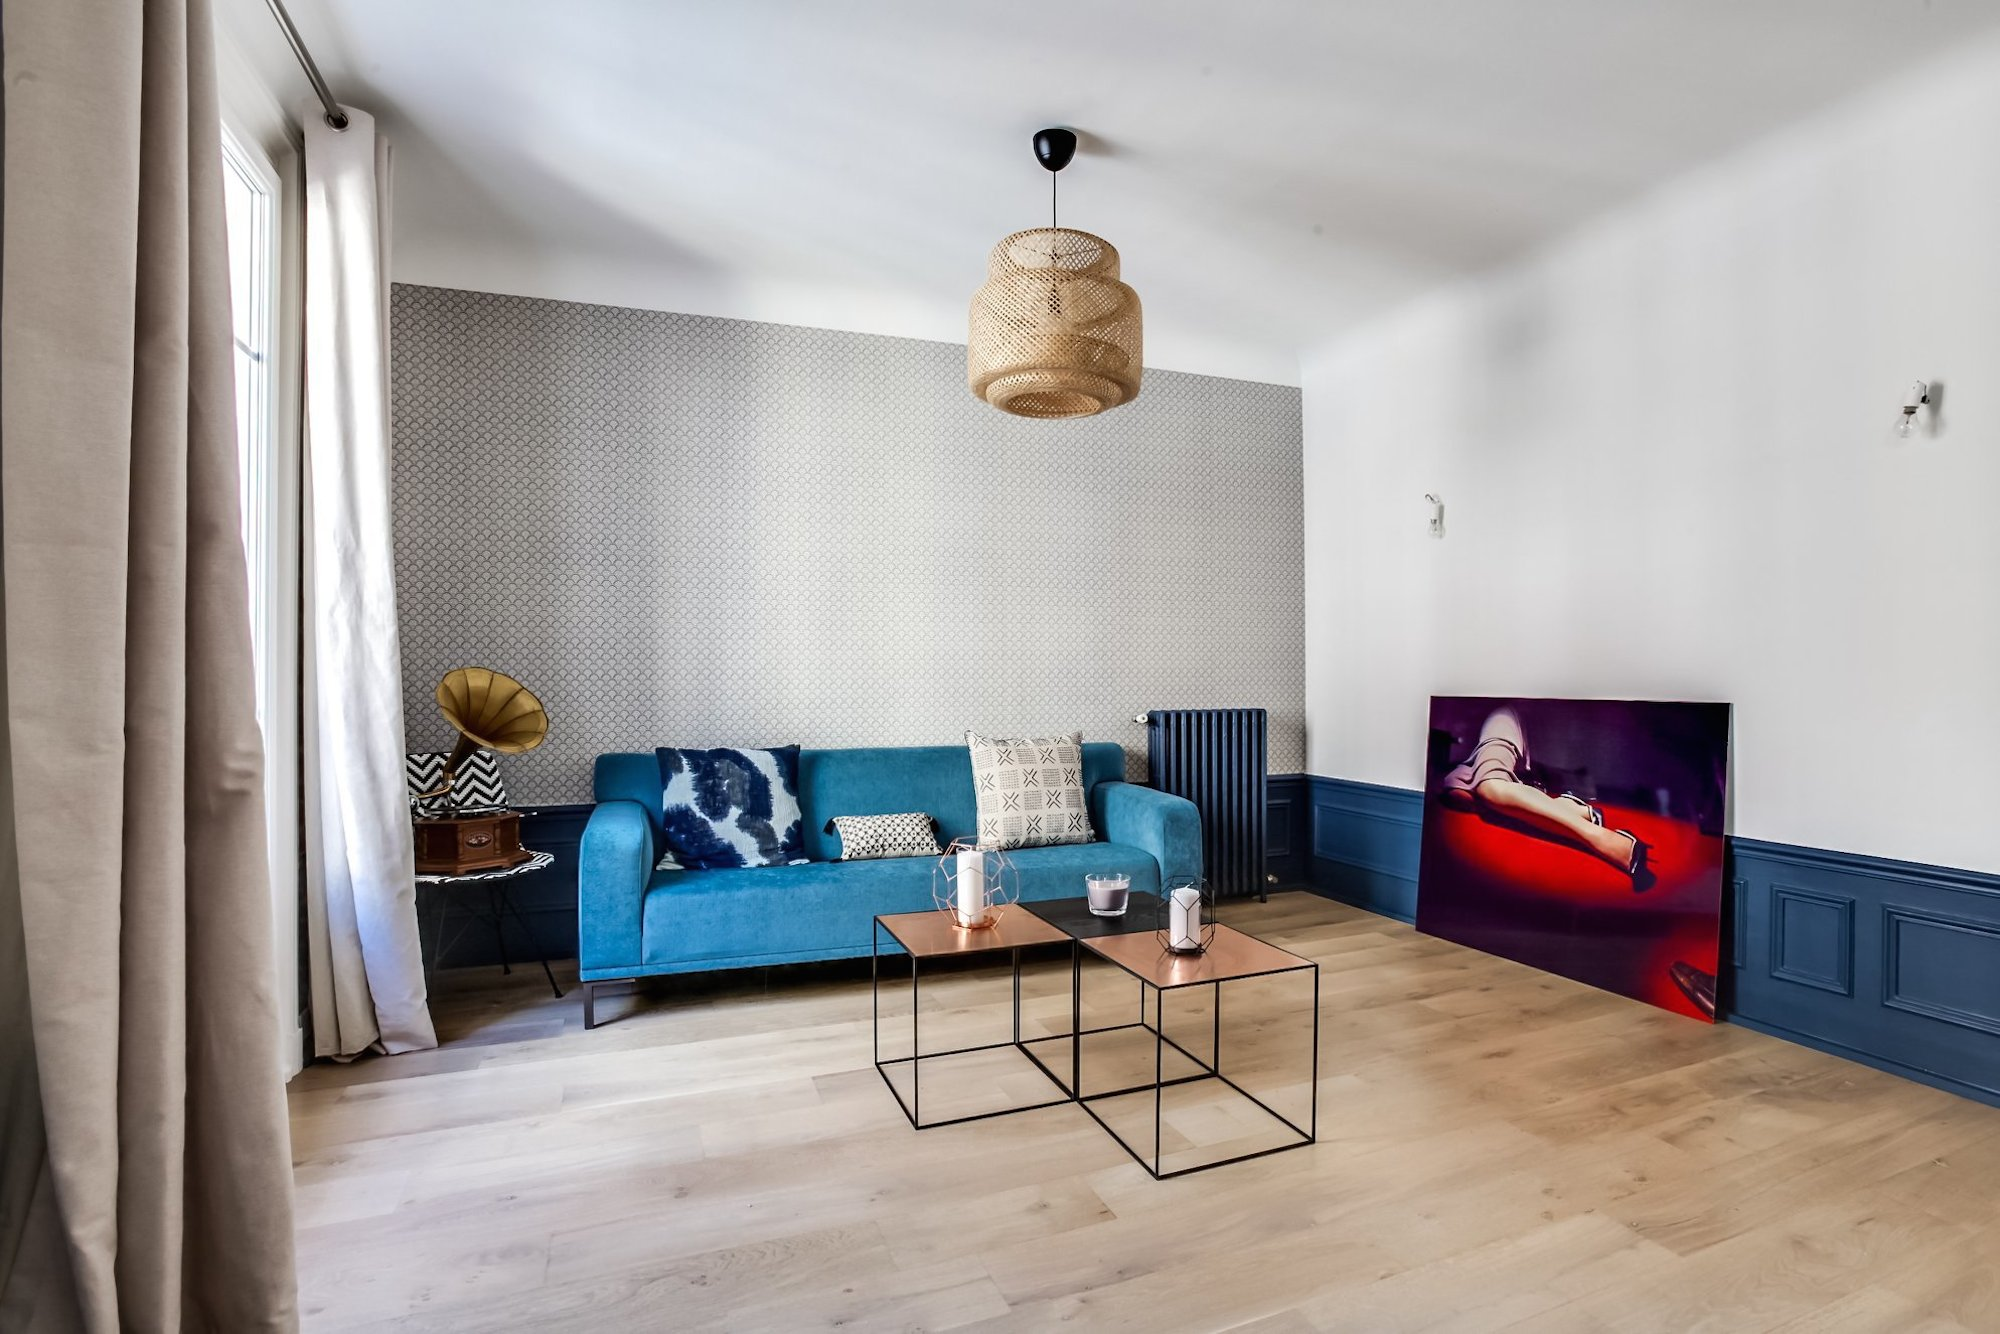 The Foire de Paris home design fair in April in Paris provides great inspiration for your Paris apartment like this one with a blue couch and large artwork of a woman's legs.